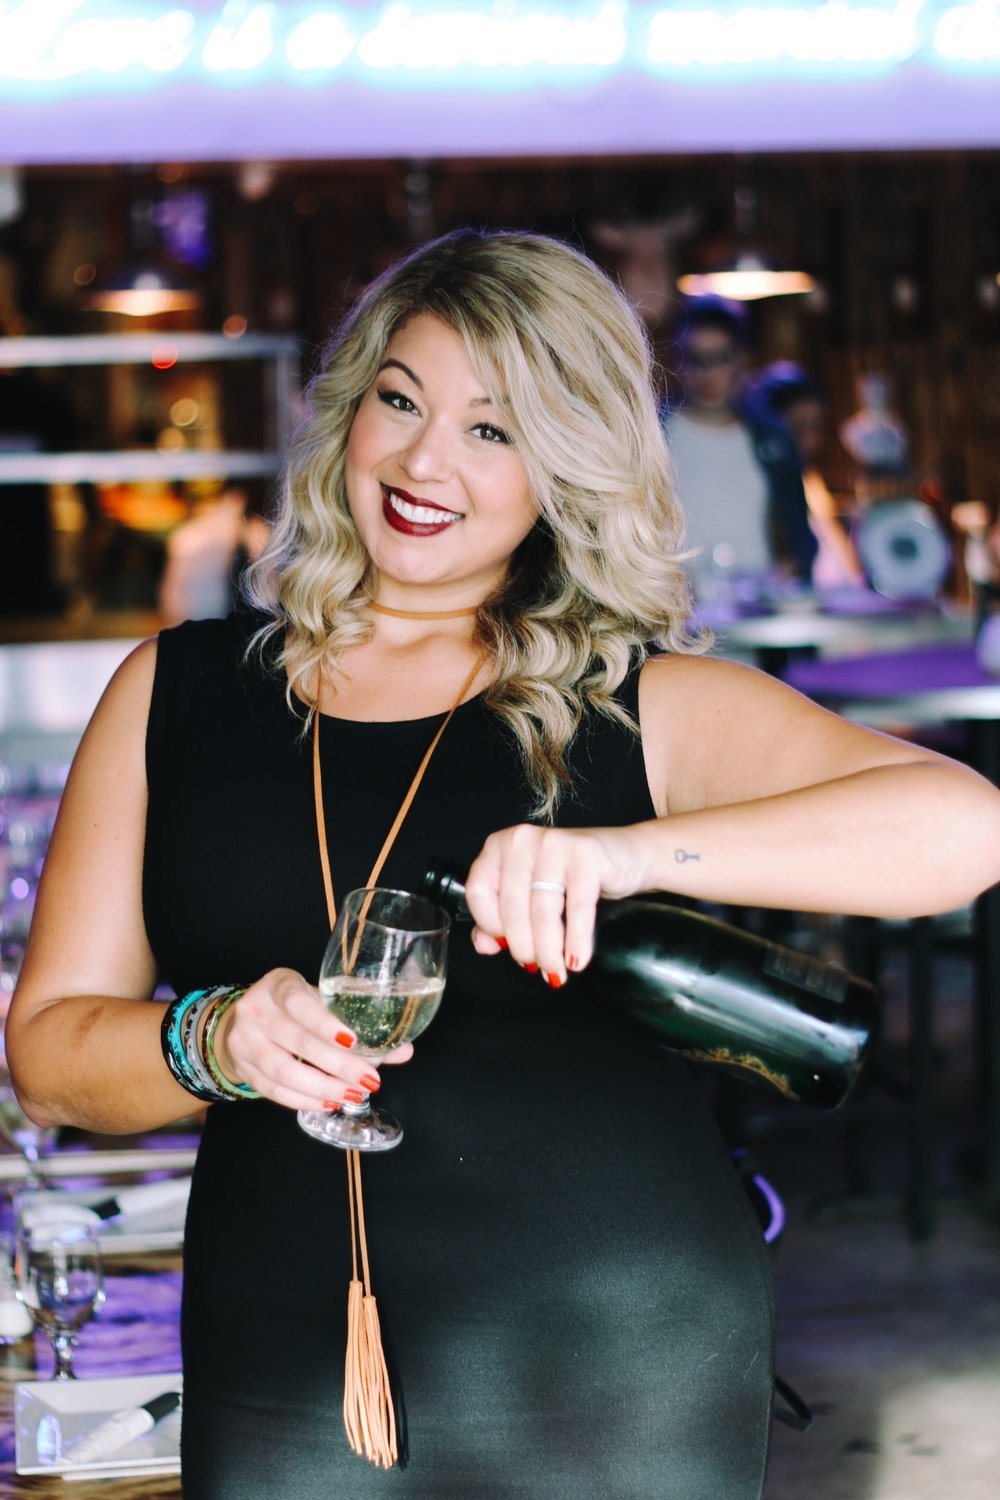 Your host: Natalie Leon, wine with nat